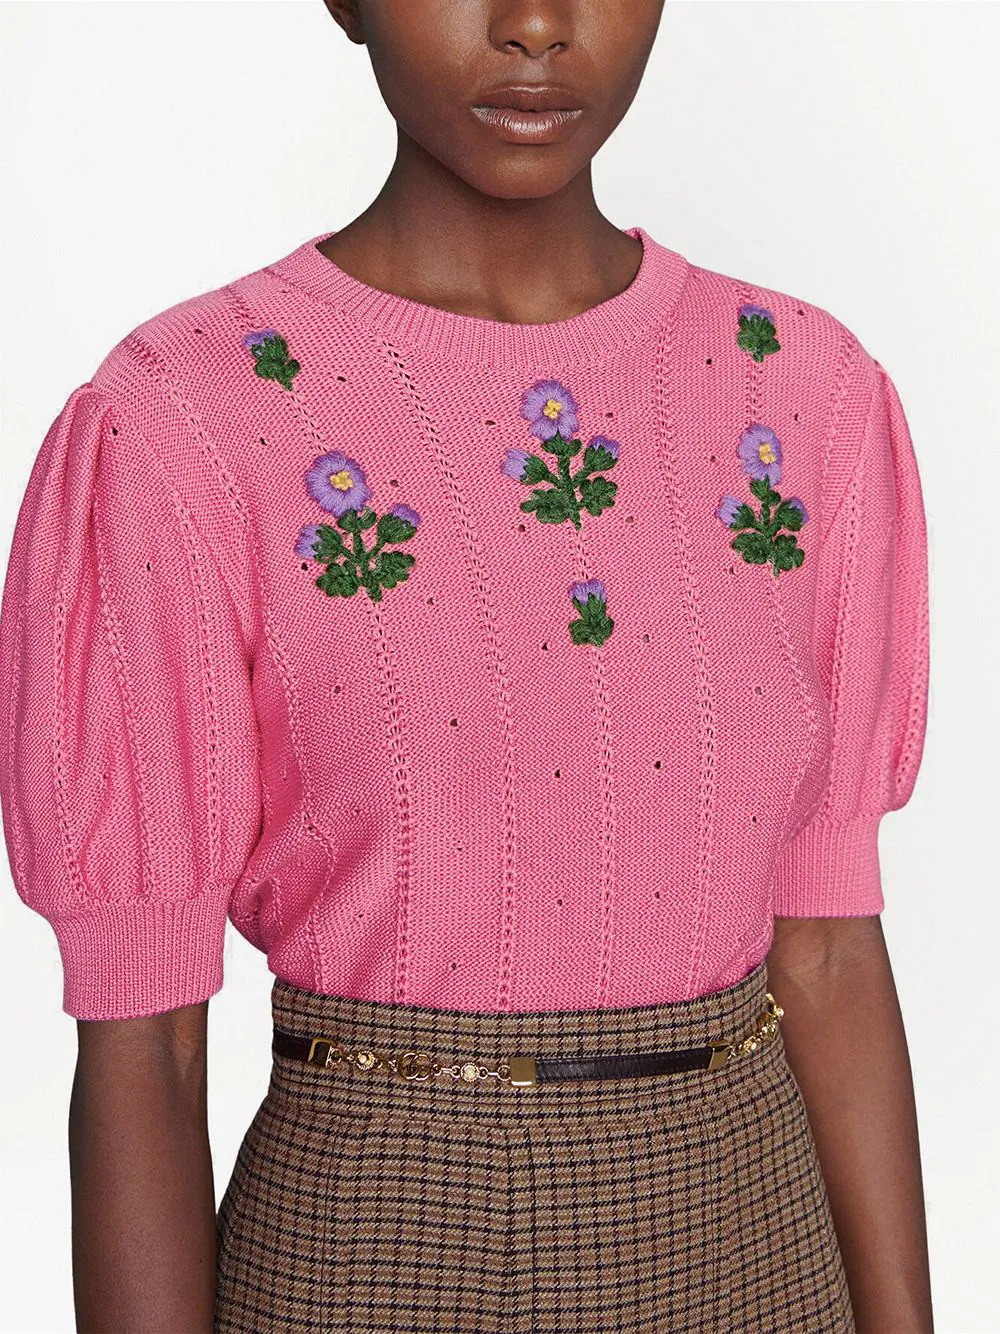 Gucci Floral Embroidery Knit Top 1918лв